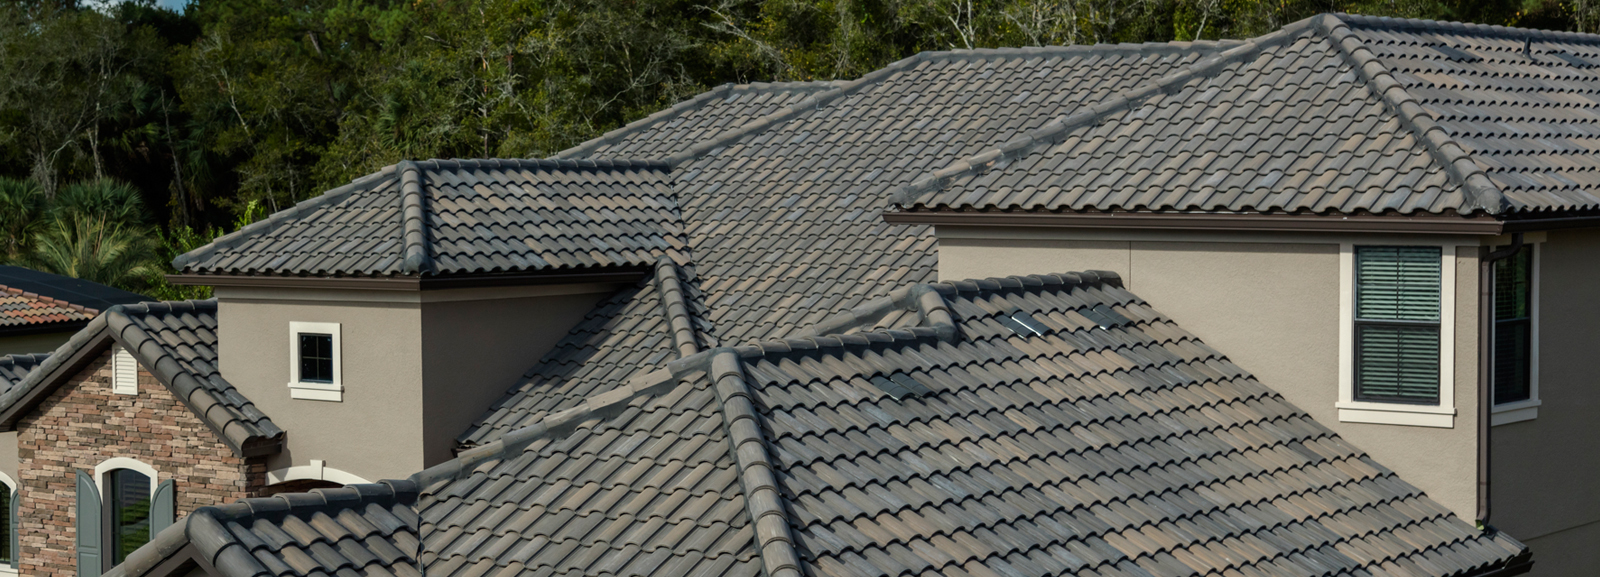 Roofing Contractor Contact Us